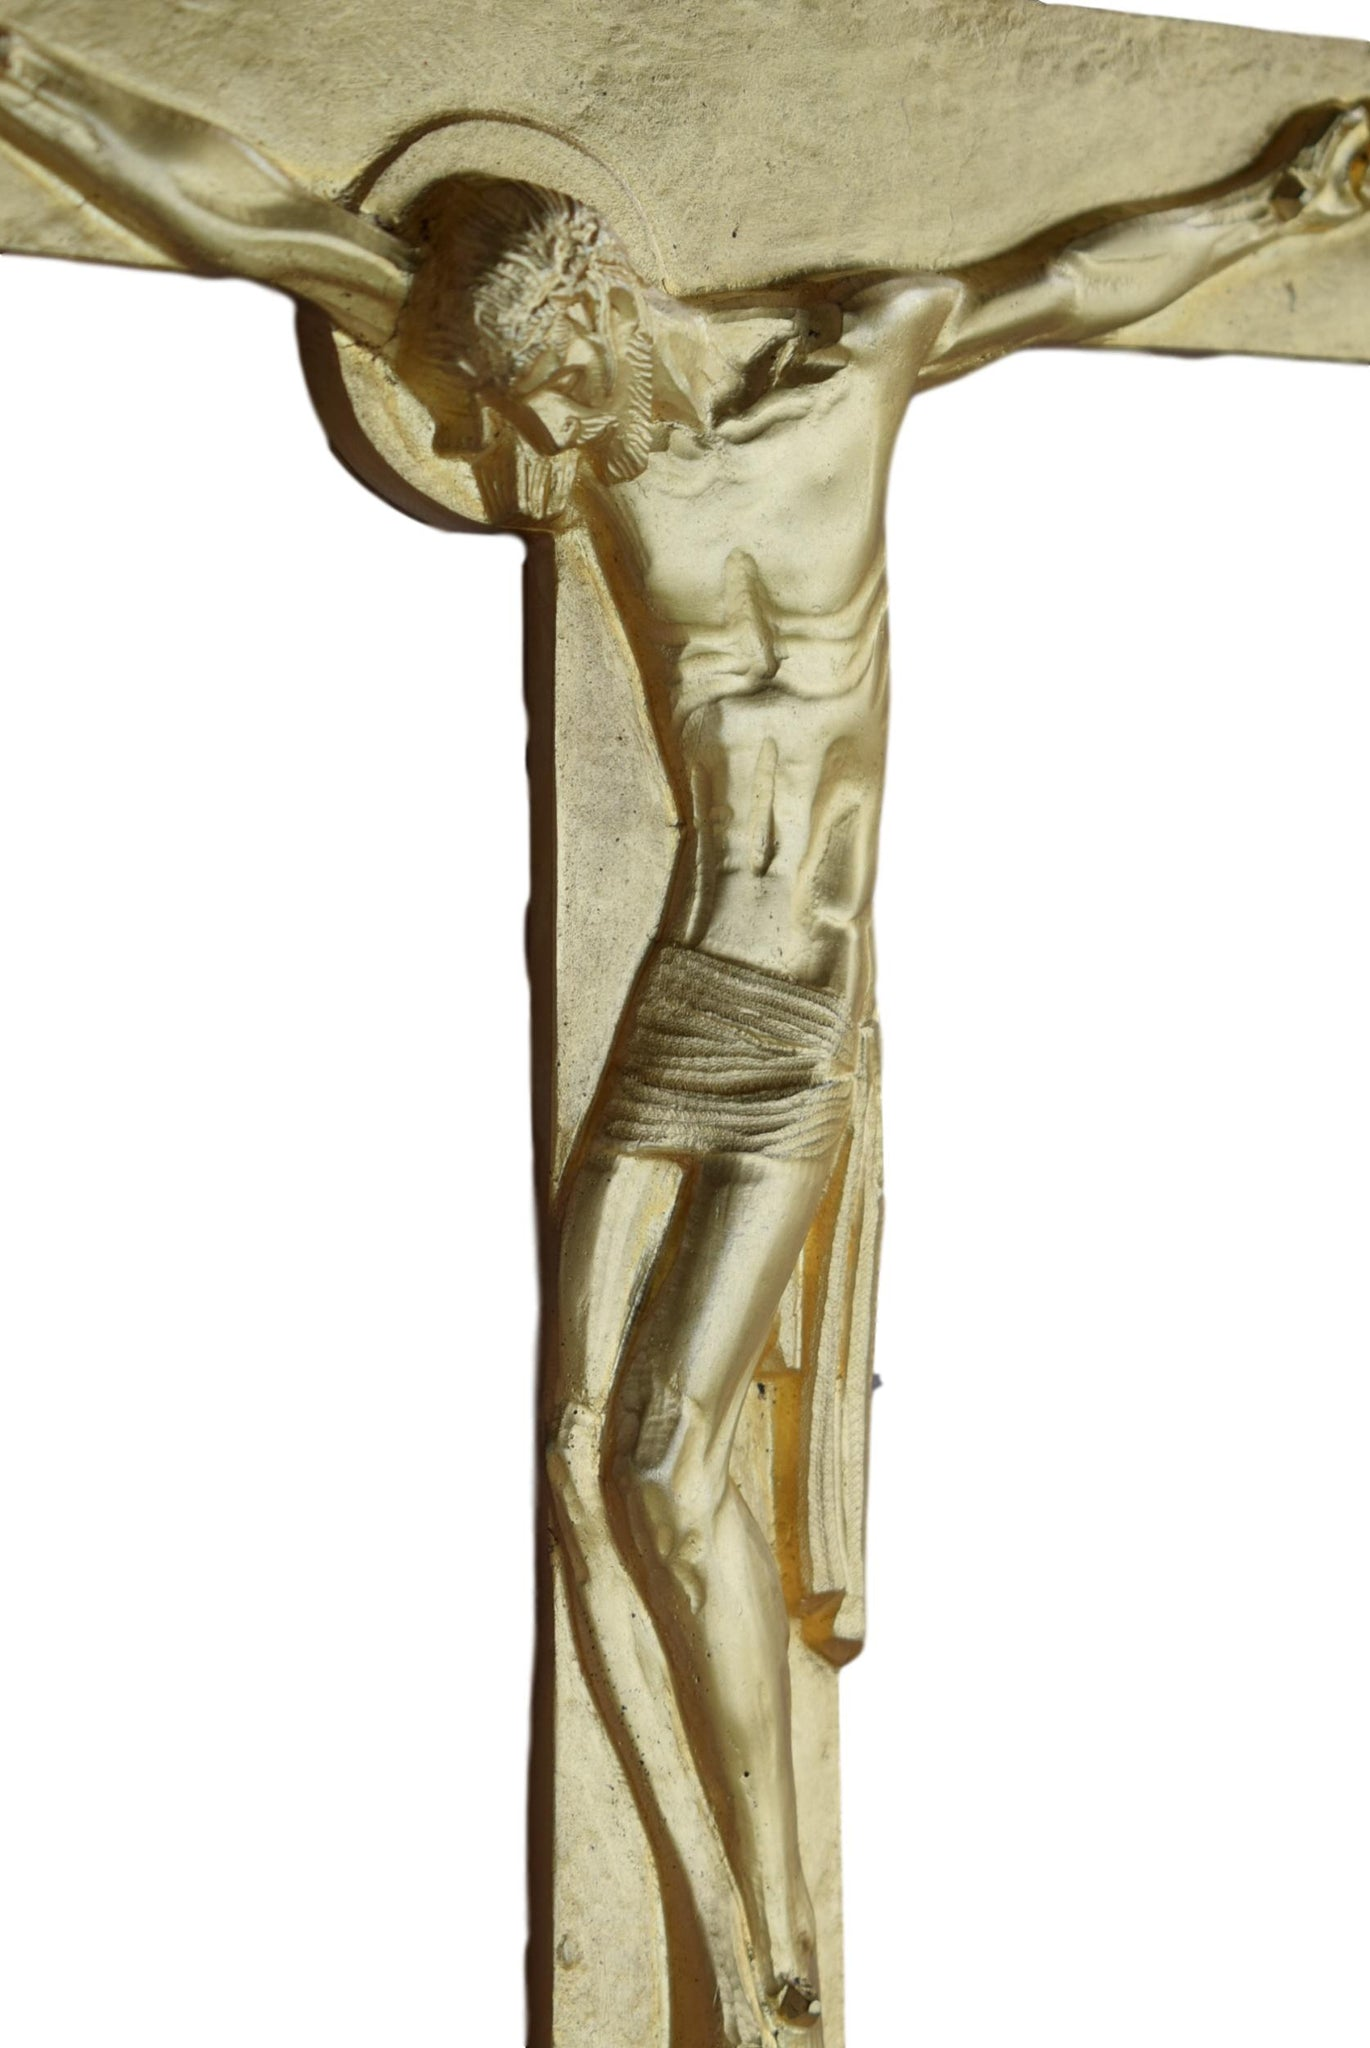 French Art Deco Ormolu Bronze Wall Cross by AM Roux - Bronze Wall Crucifix - Large Catholic Religious Cross